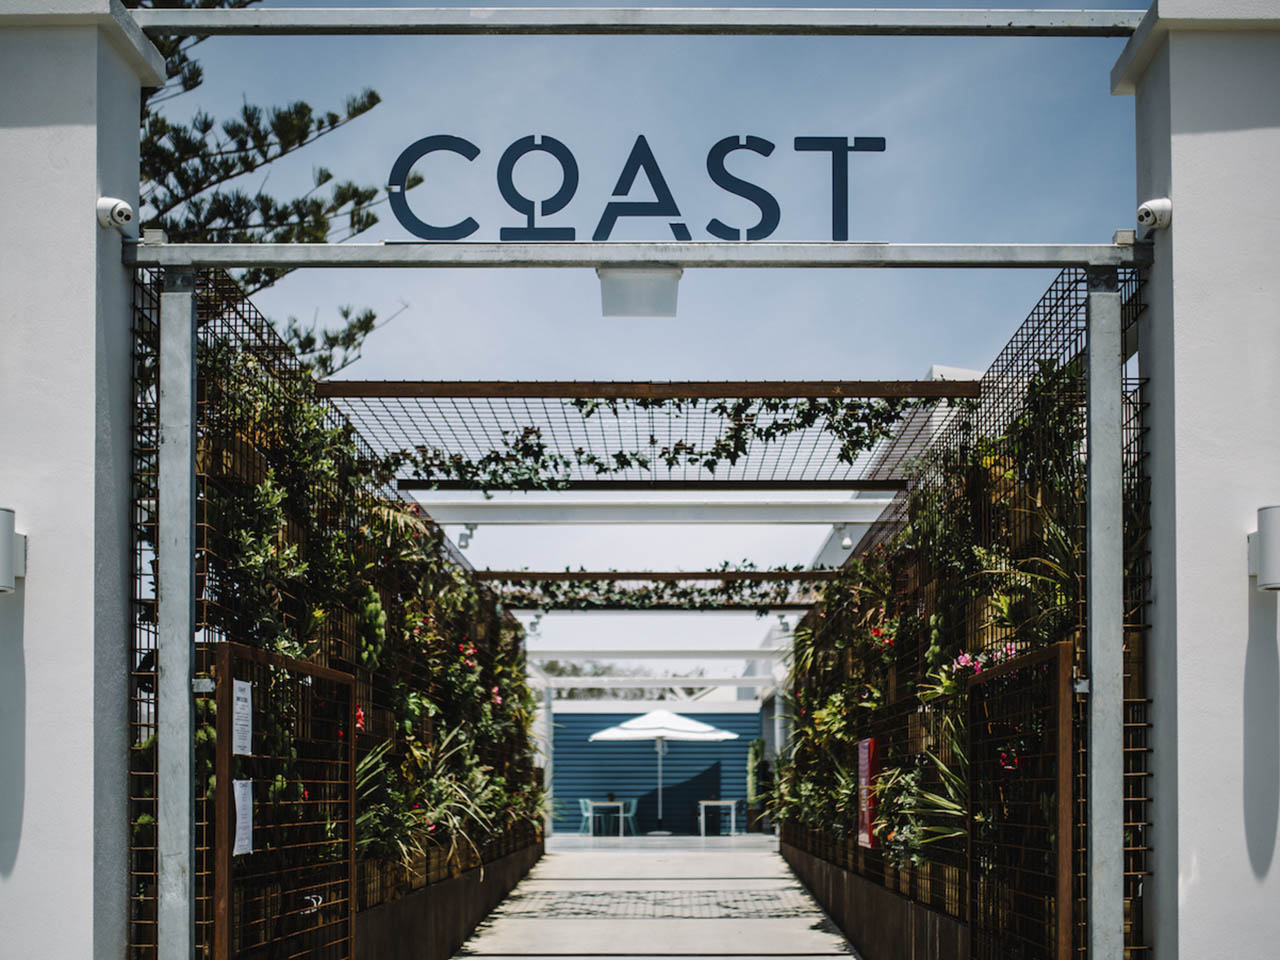 The Entrance Sign For The Coast Port Beach.